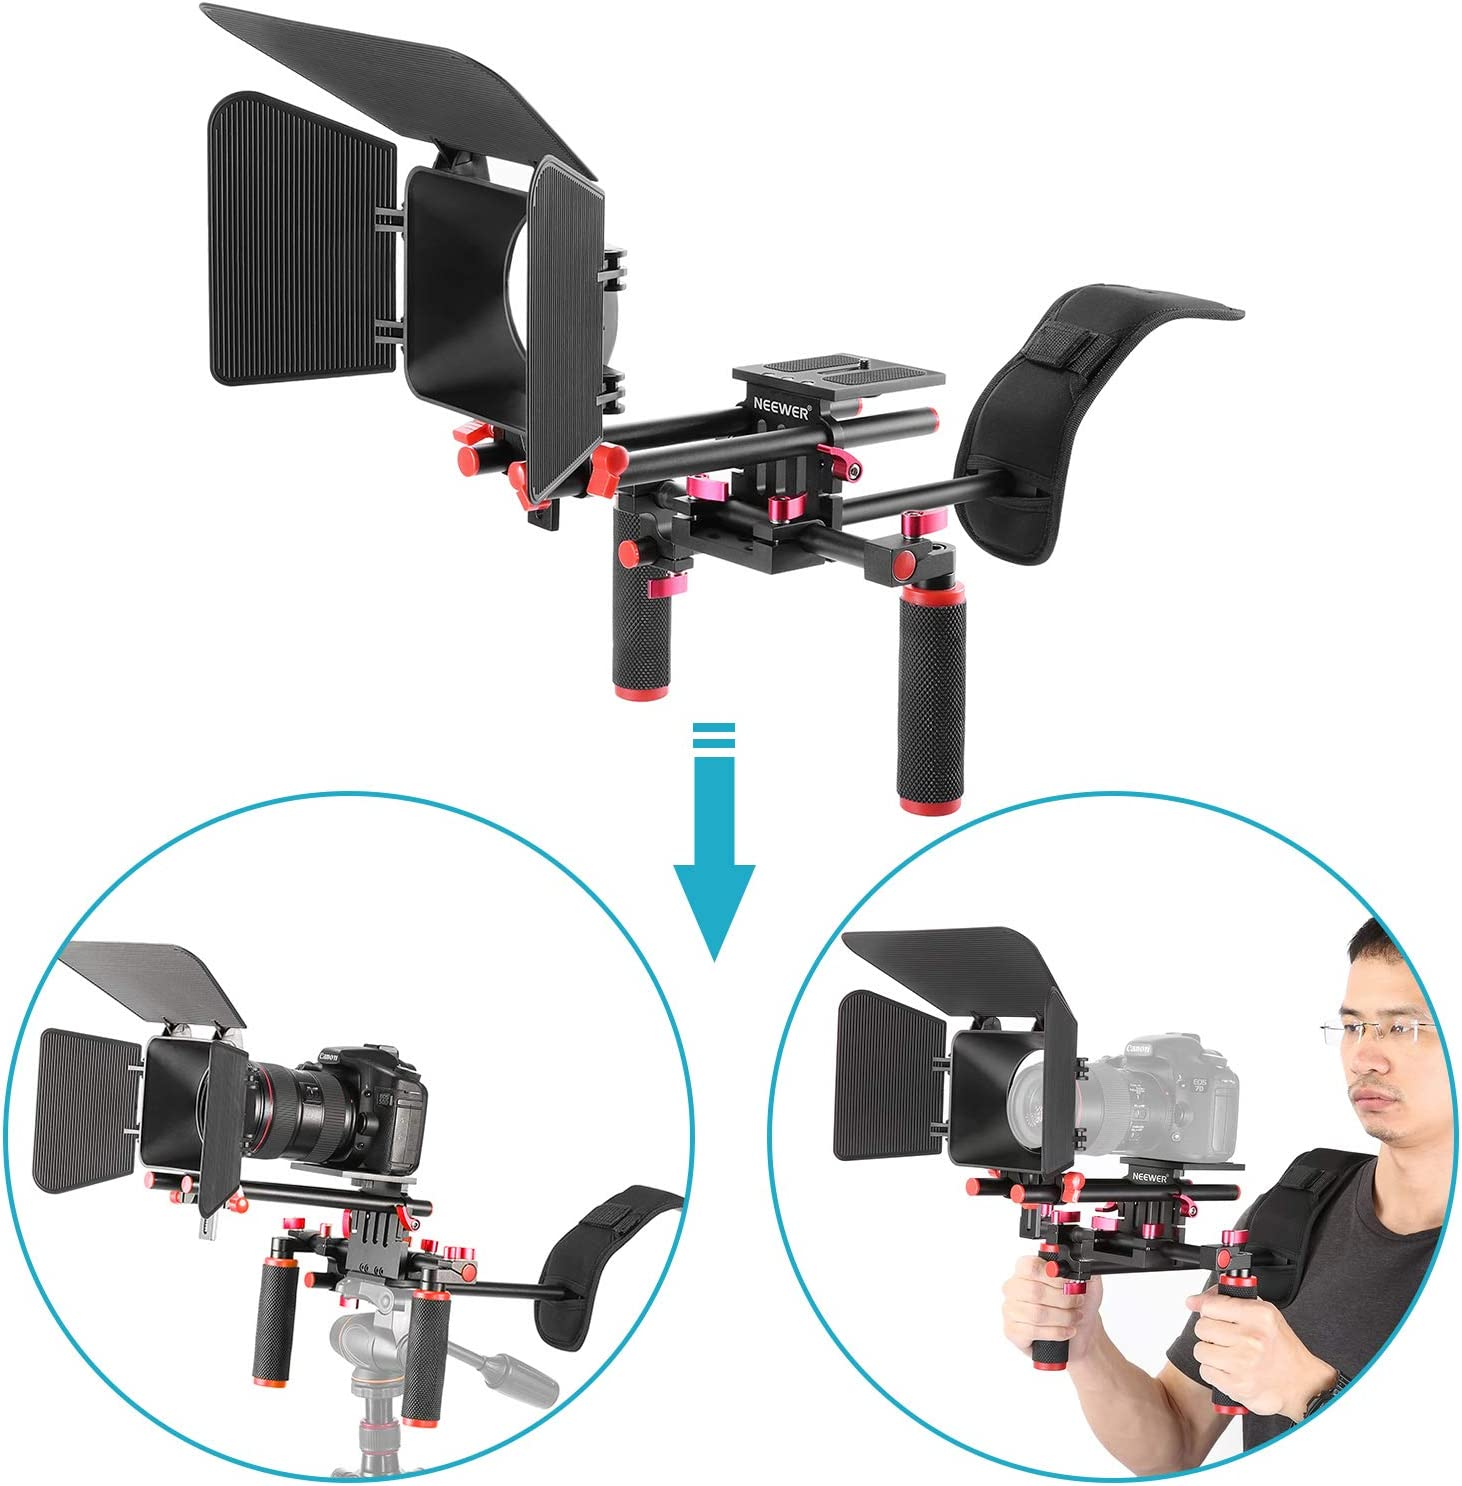 C-shaped Bracket,Handle Grip,15mm Rod,Matte Box,Follow Focus,Shoulder Rig Neewer Film Movie Video Making System Kit for Canon Nikon Sony and Other DSLR Cameras Video Camcorders Blue+Black includes